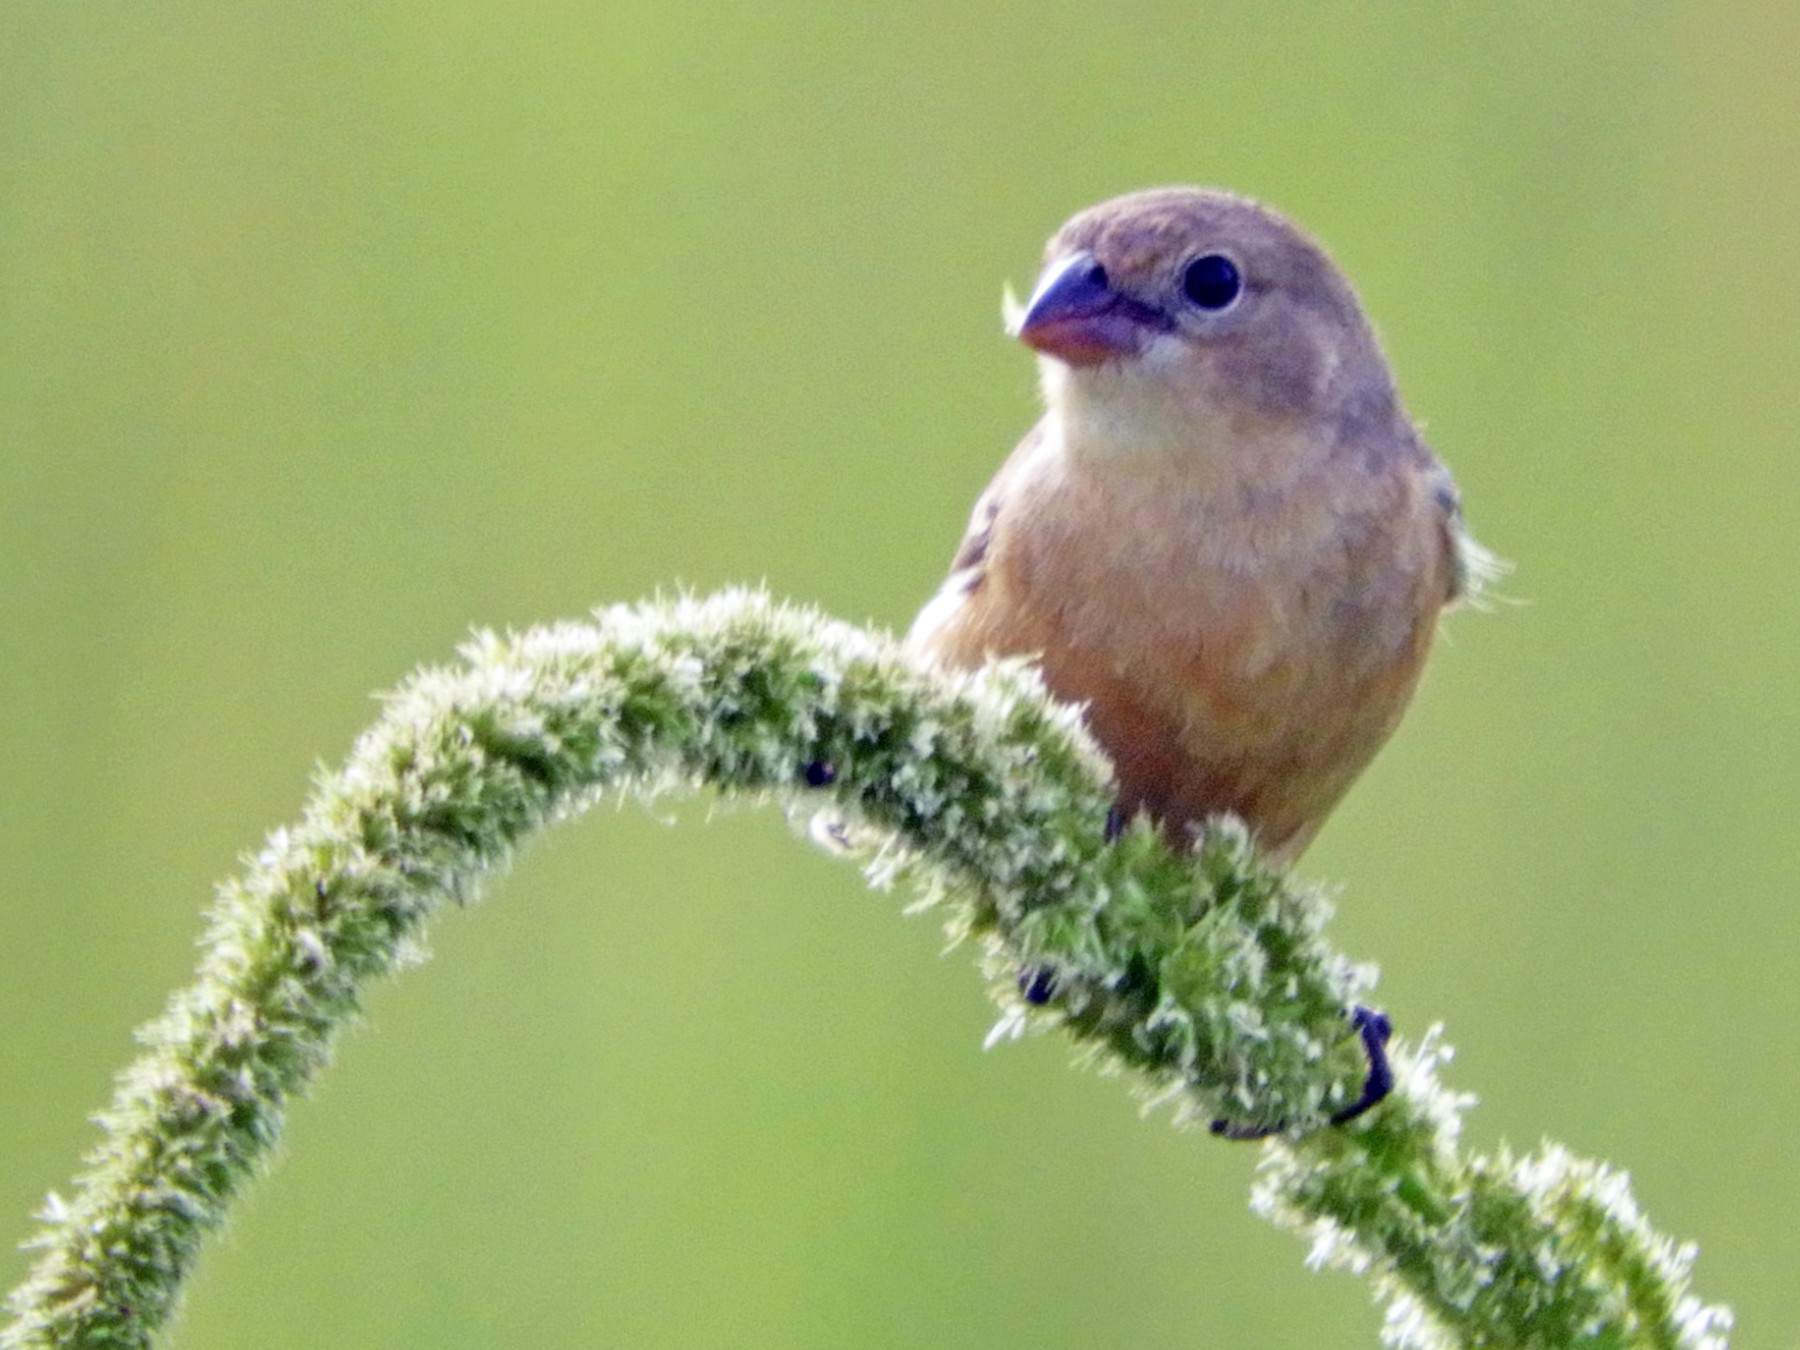 Tawny-bellied Seedeater - Silvia Enggist